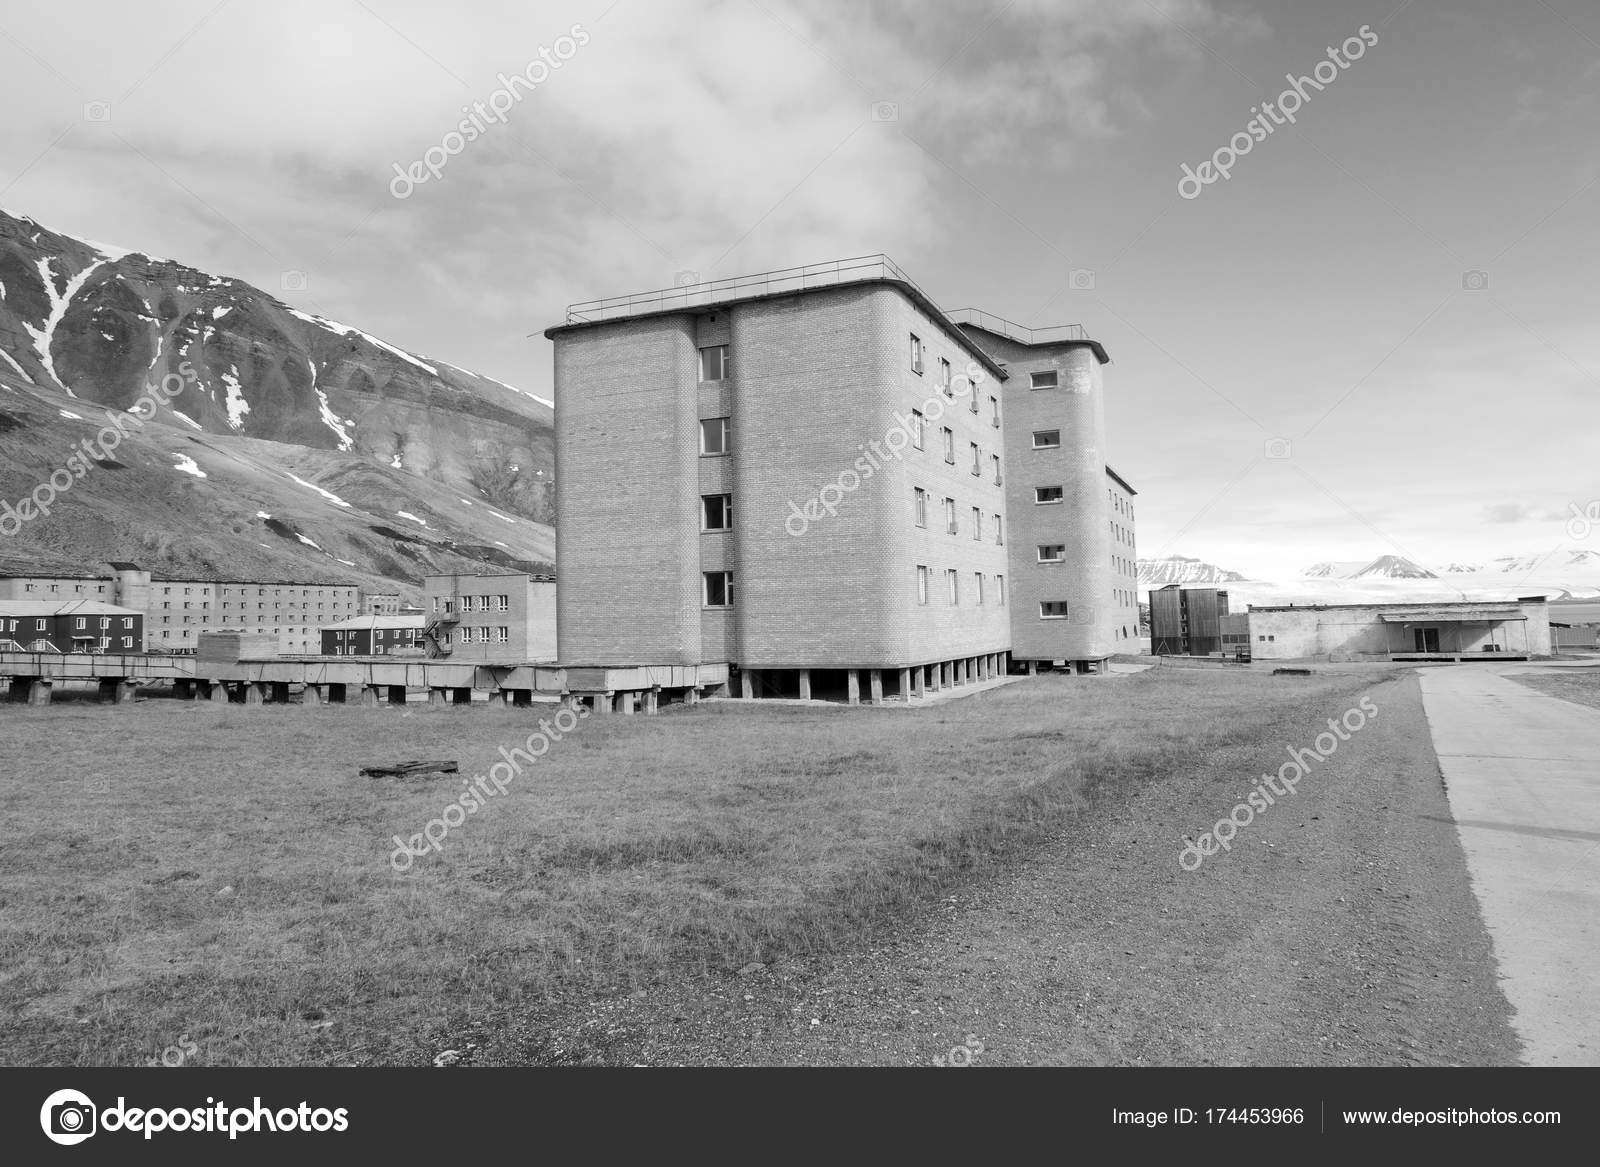 The abandoned russian mining town Pyramiden in Svalbard